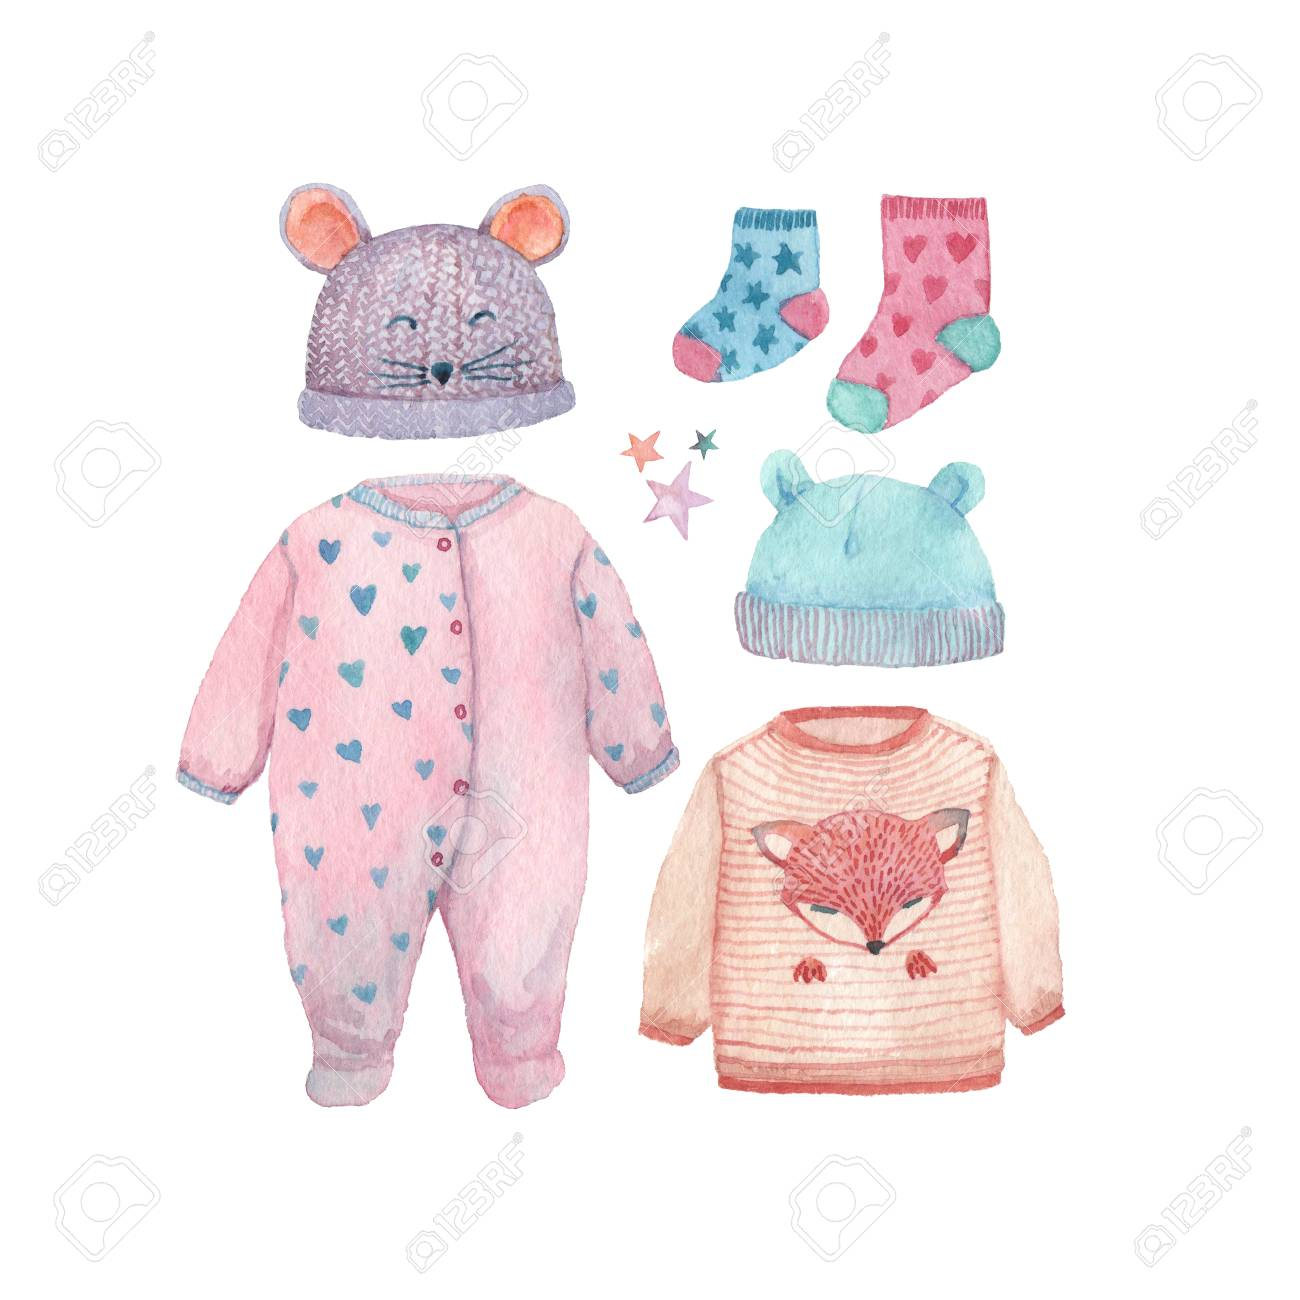 A Set Of Baby Clothes Painted In Watercolor  Romper Suit ecb5d460036